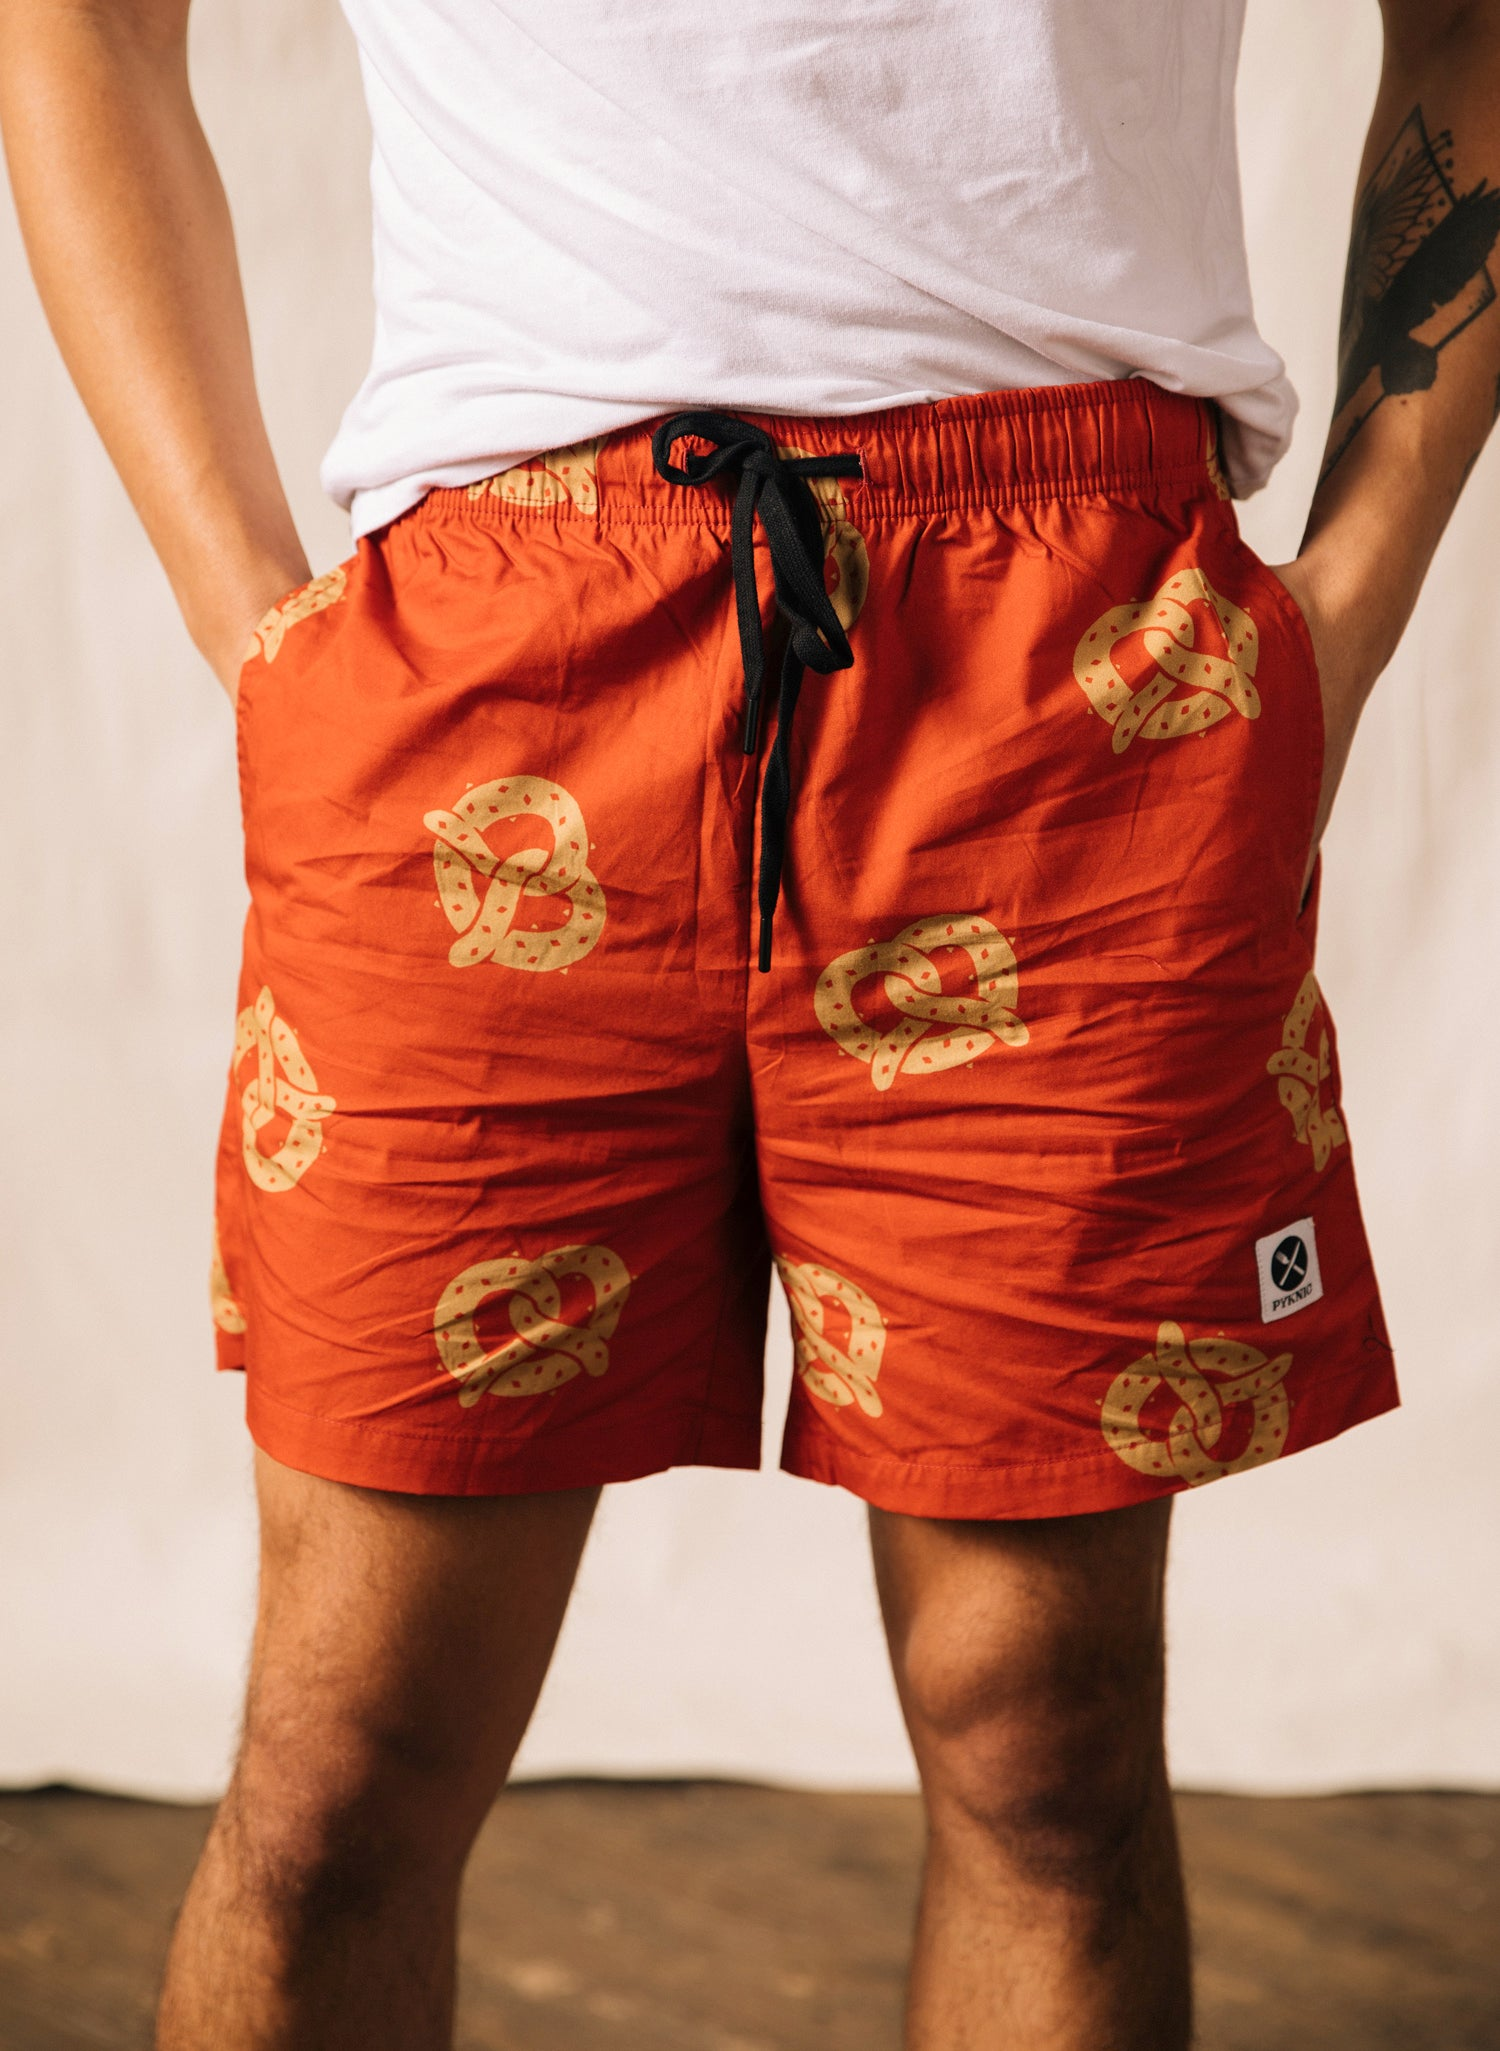 Pretzels Shorts Foodies Food Philly Super Soft Pretzel Walk Shorts Baggies